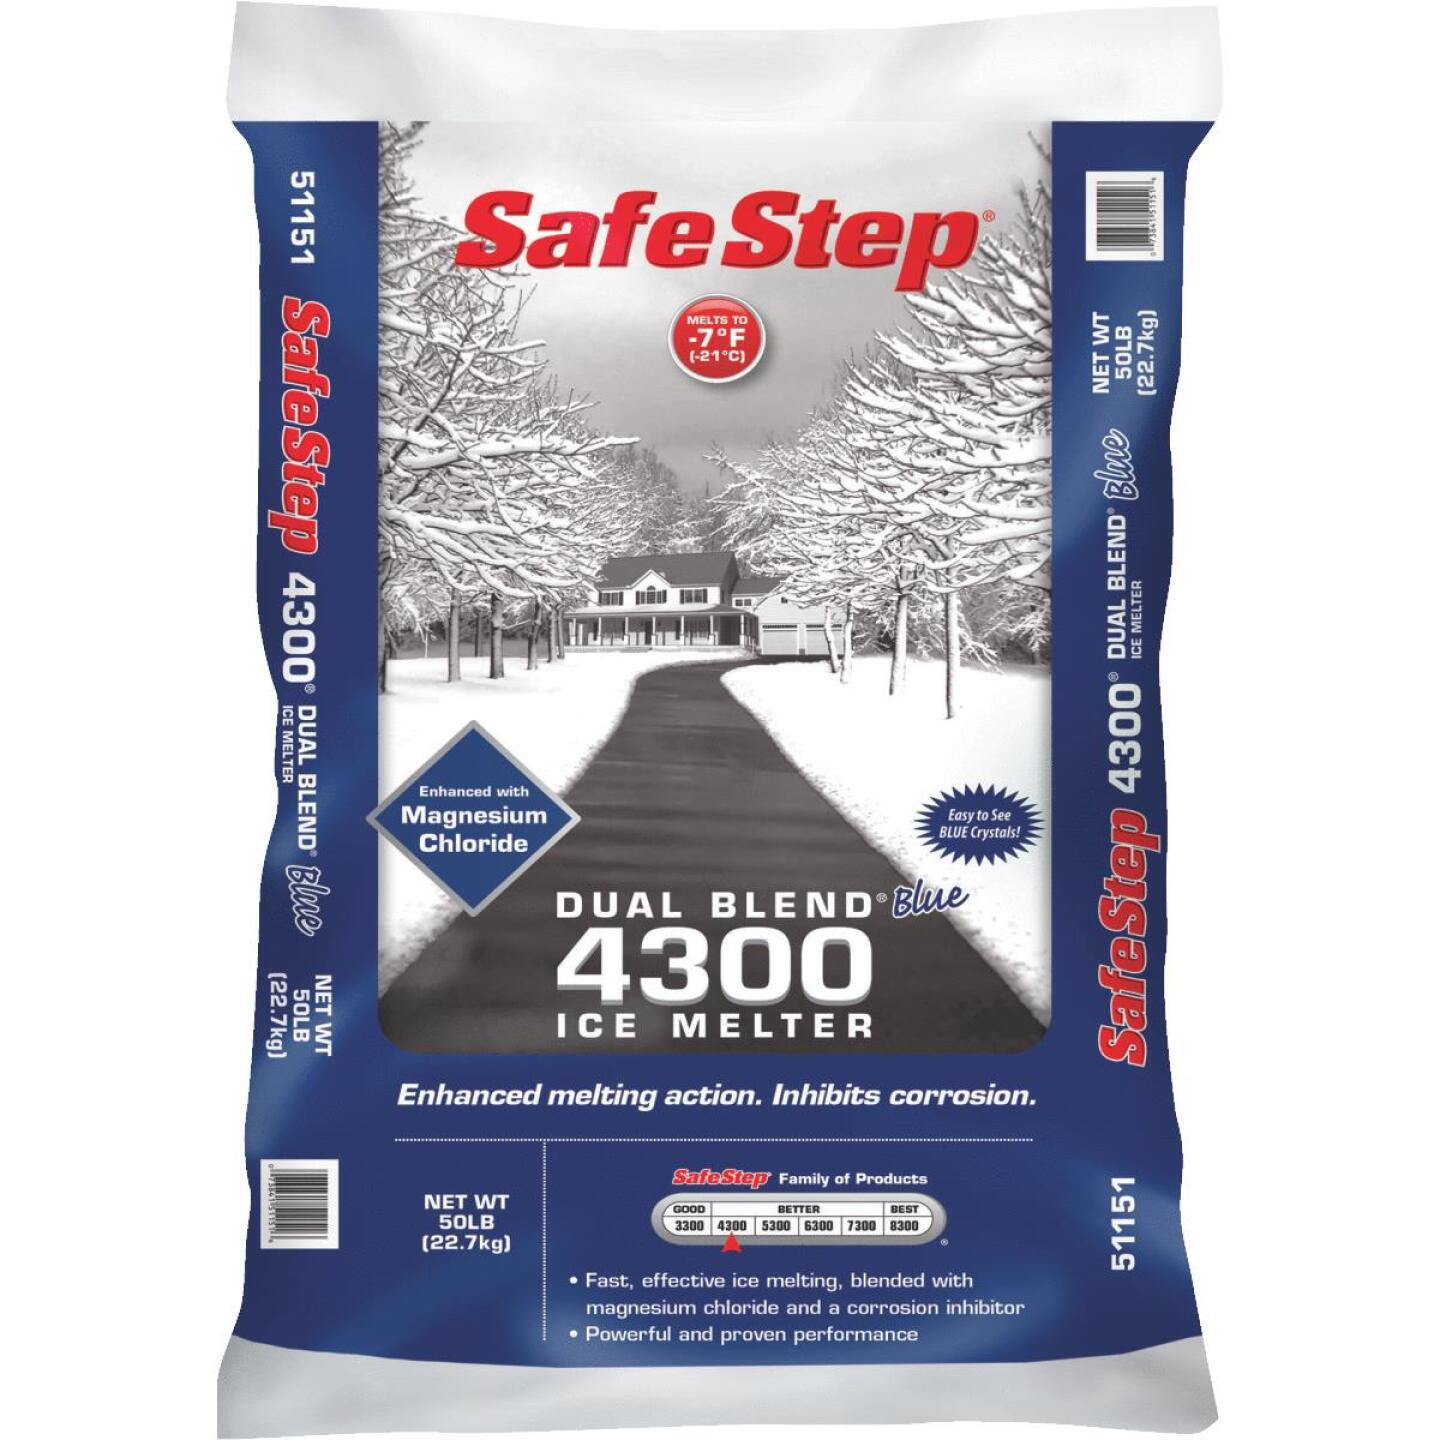 Safe Step Dual Blend Blue 4300 50 Lb. Ice Melt Pellets Image 1